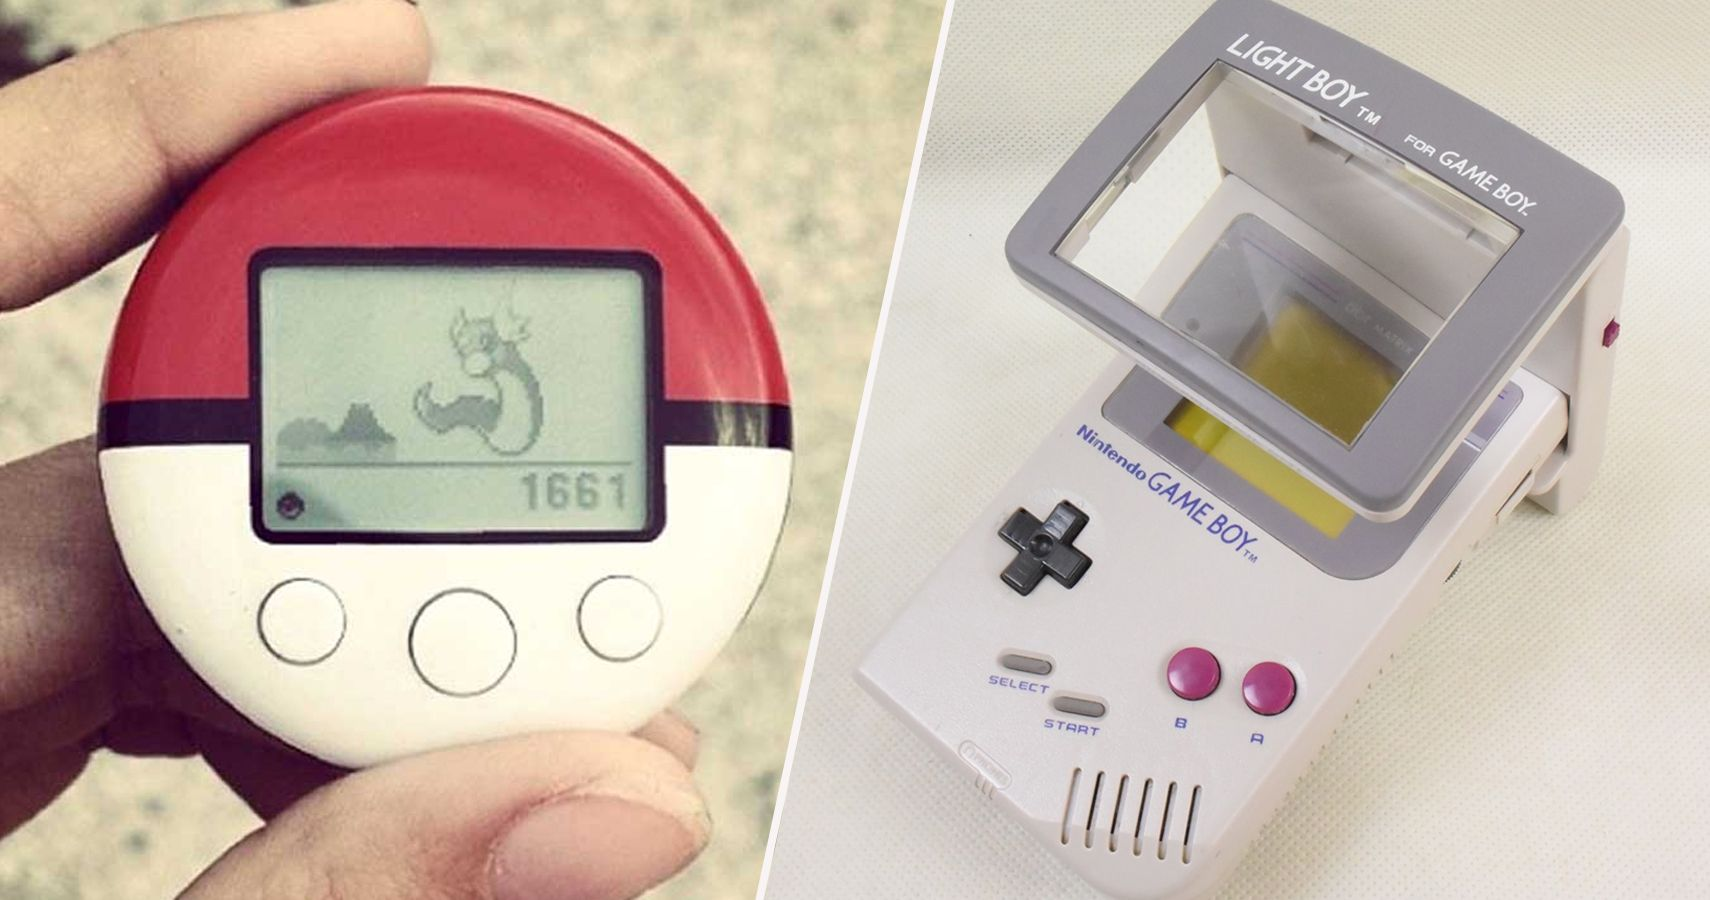 20 Ridiculous Console Game Accessories That Shouldn't Exist